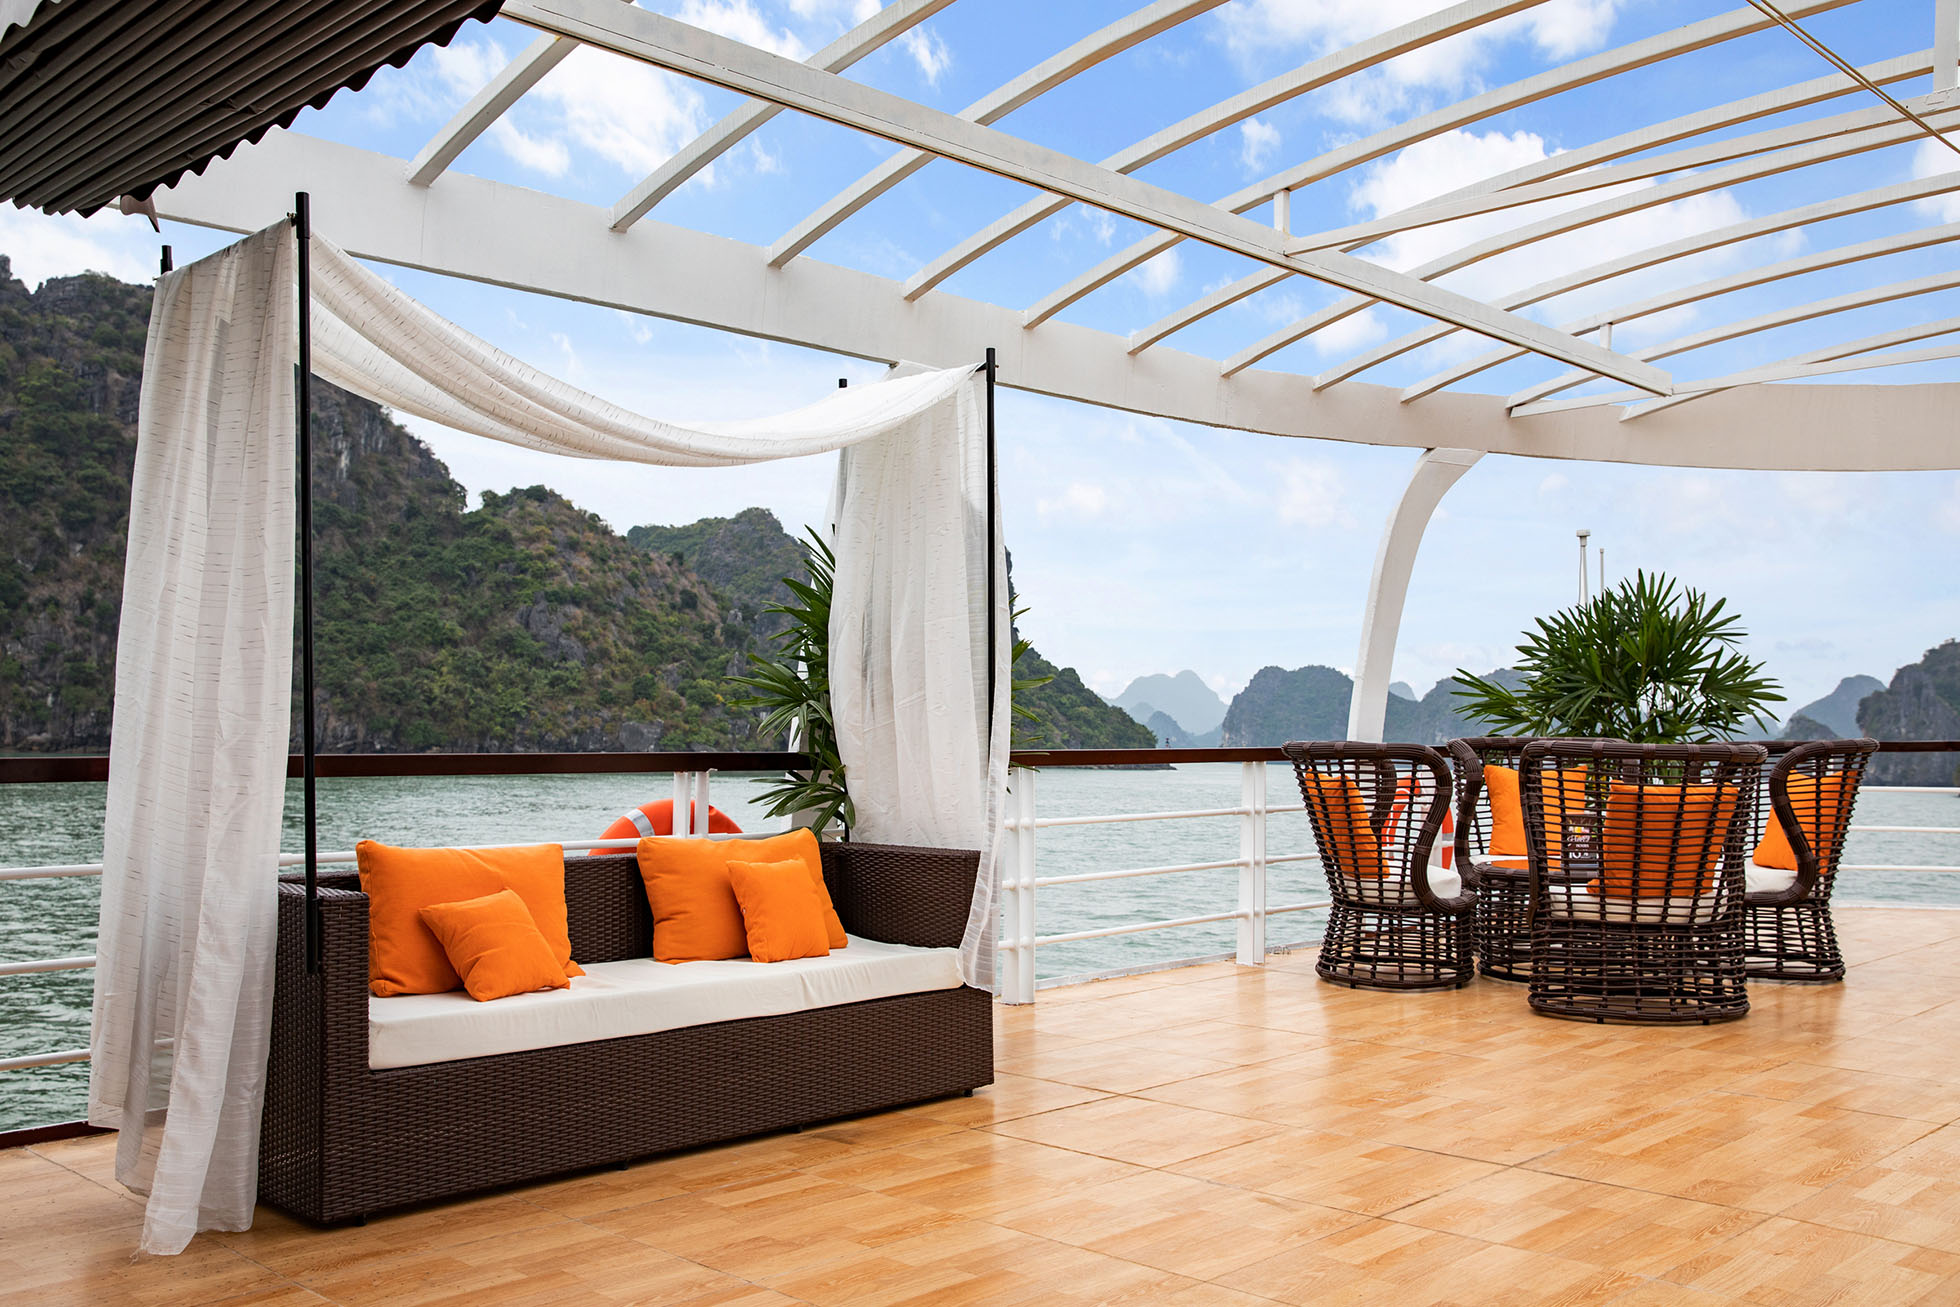 Halong Bay 1 day tour from Hanoi by Cruises 9